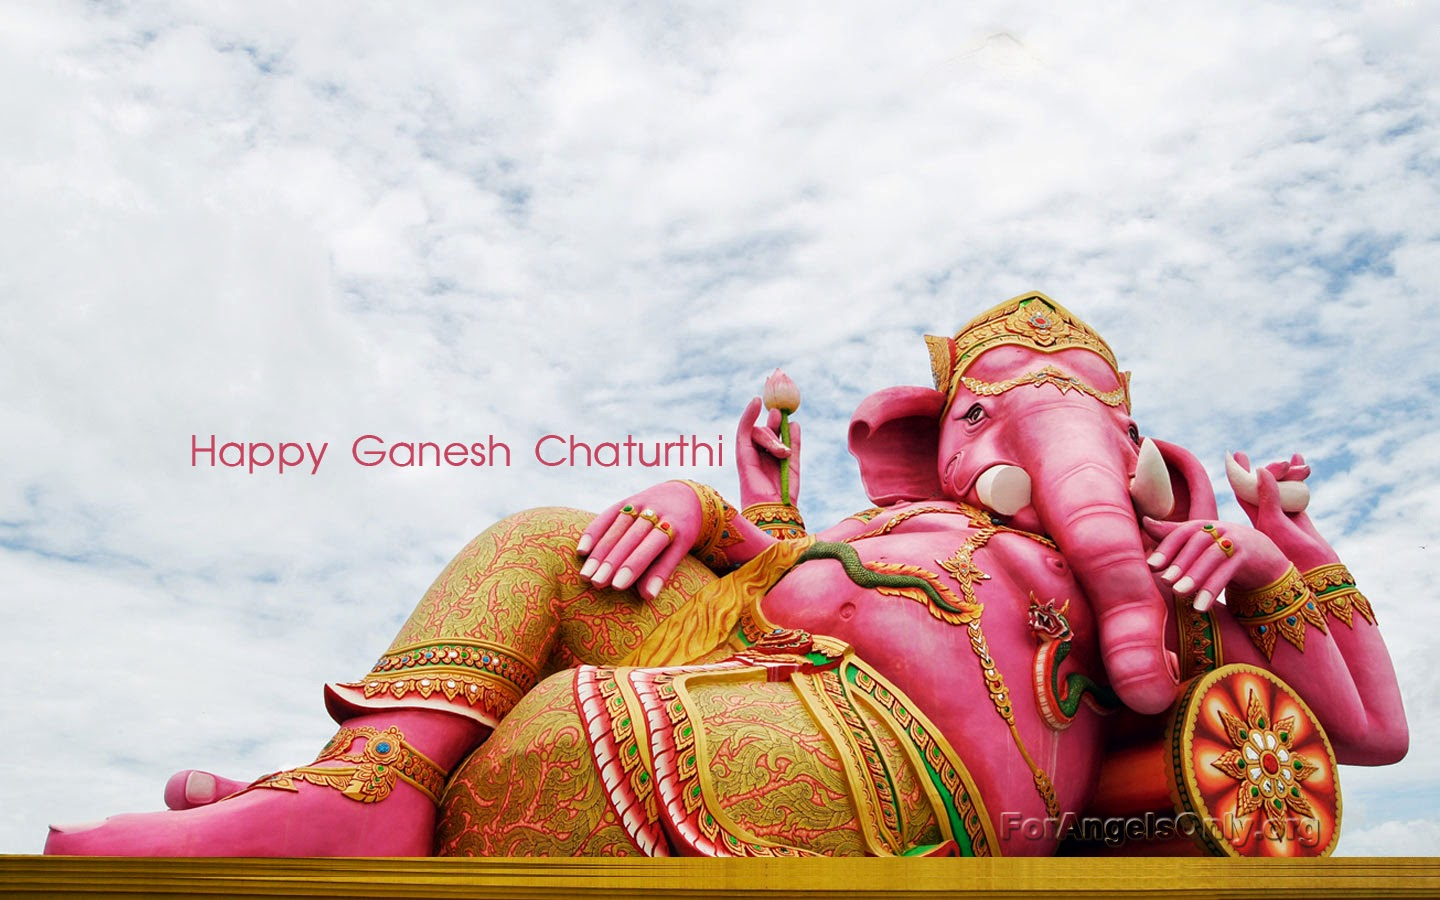 Ganpati Bappa 3d Wallpaper Top 10 Best Happy Ganesh Chaturthi Images For Whatsapp 2017